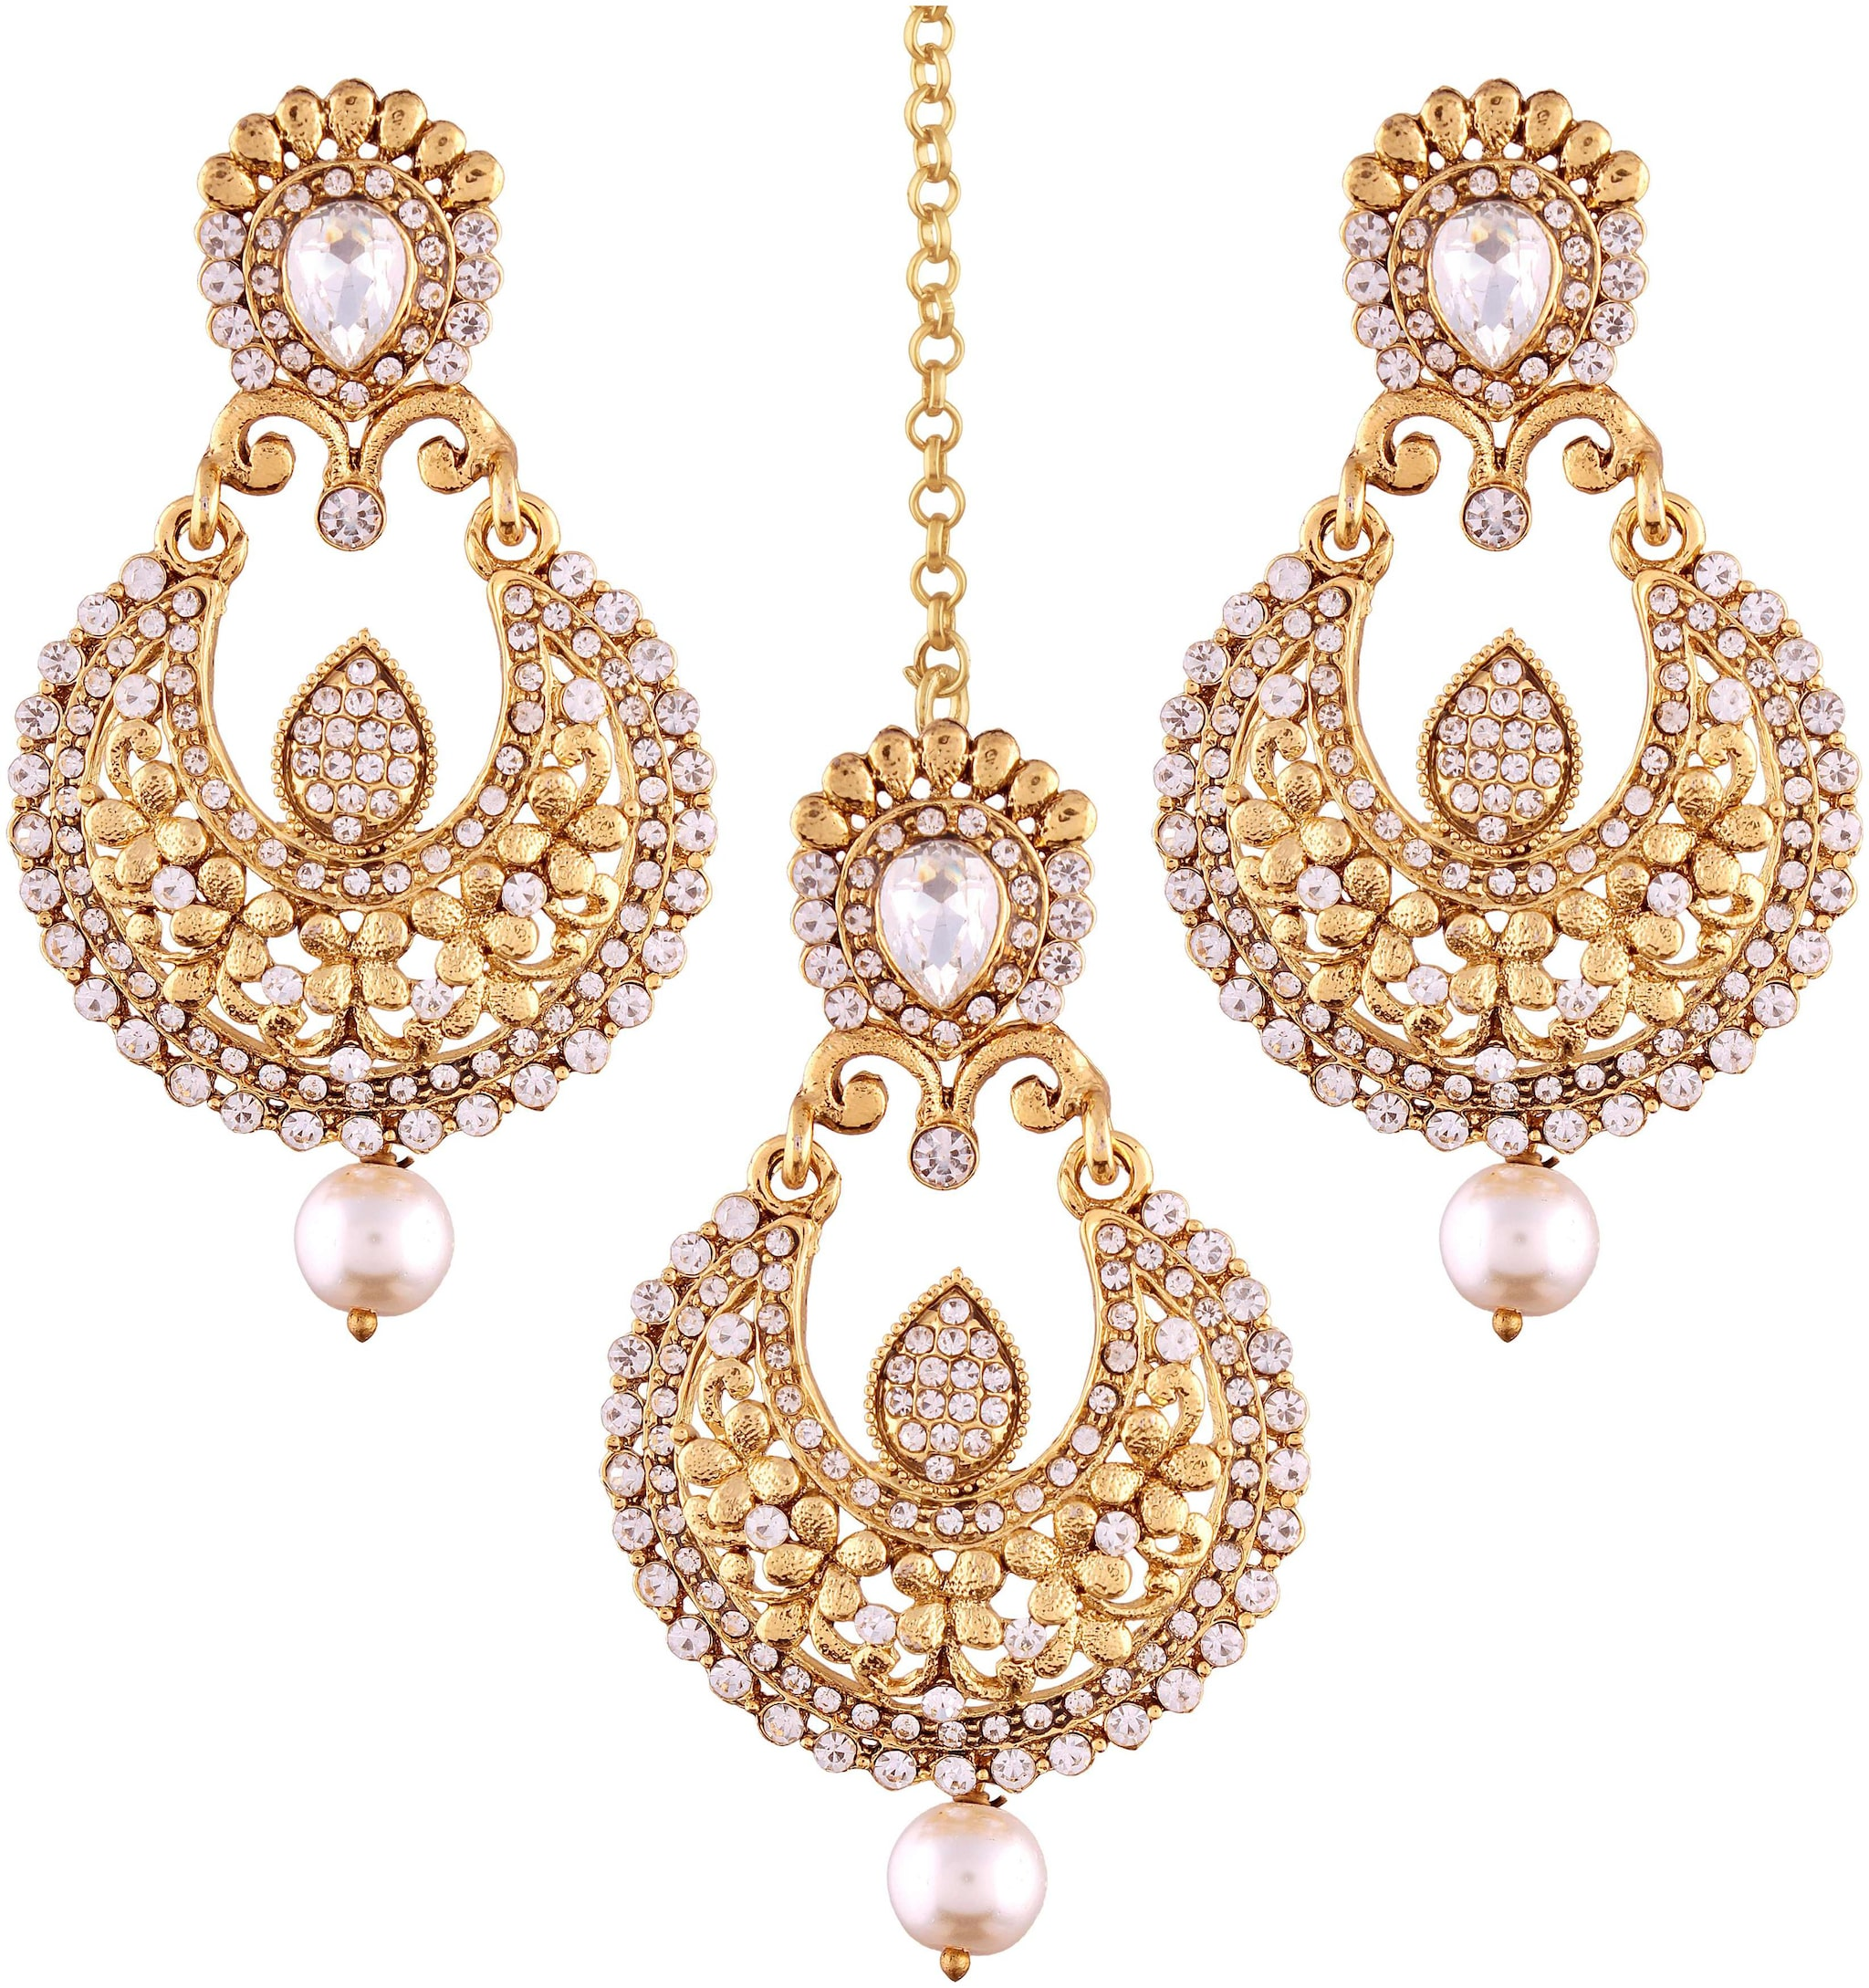 https://assetscdn1.paytm.com/images/catalog/product/J/JE/JEWETNICO-GOLD-ETNI2469165153FC0/1562703500216_0..jpg